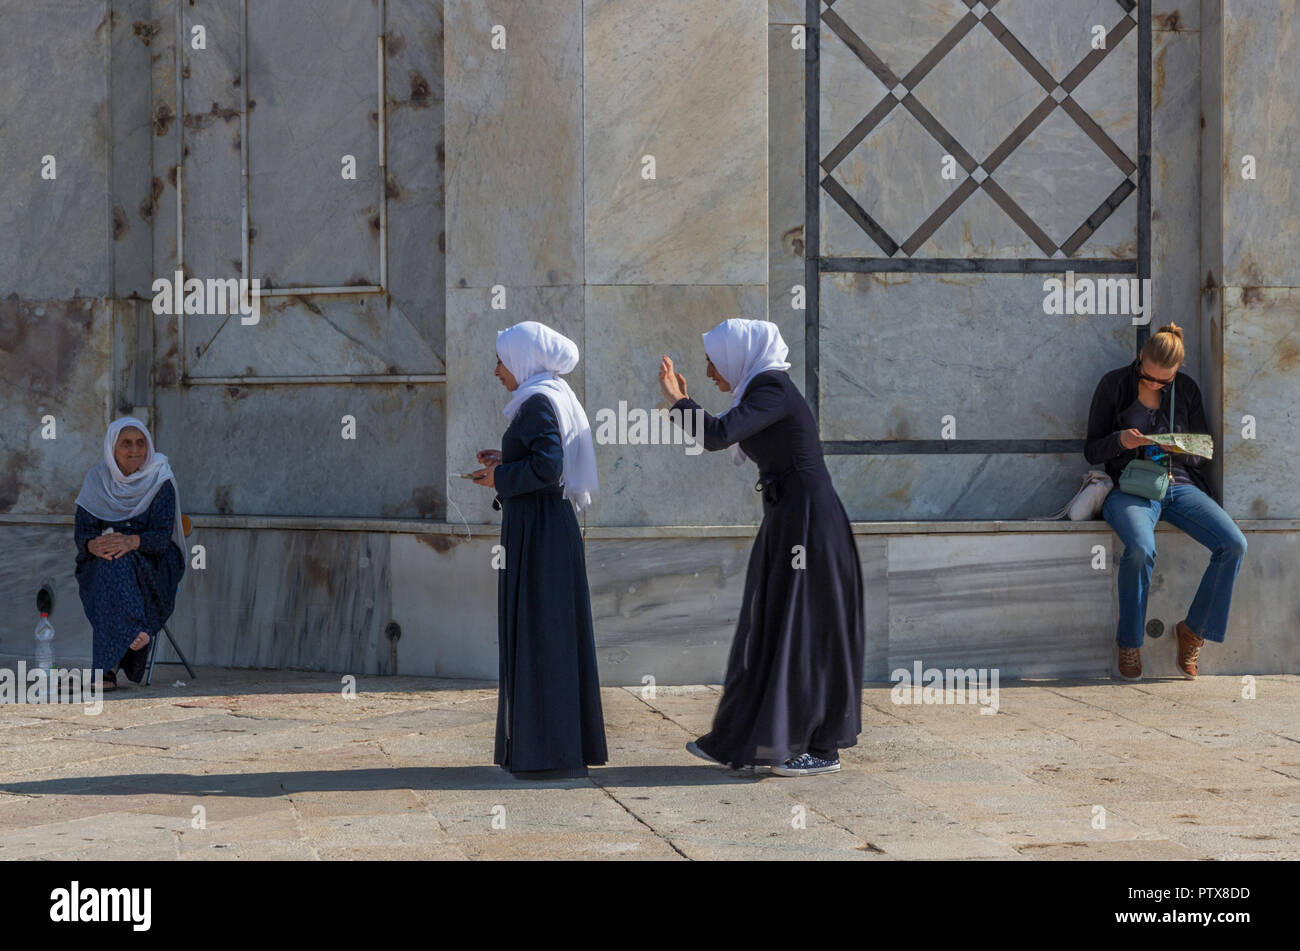 Muslim women at the Dome of the Rock, on the Temple Mount in the Old City of Jerusalem, Israel - Stock Image